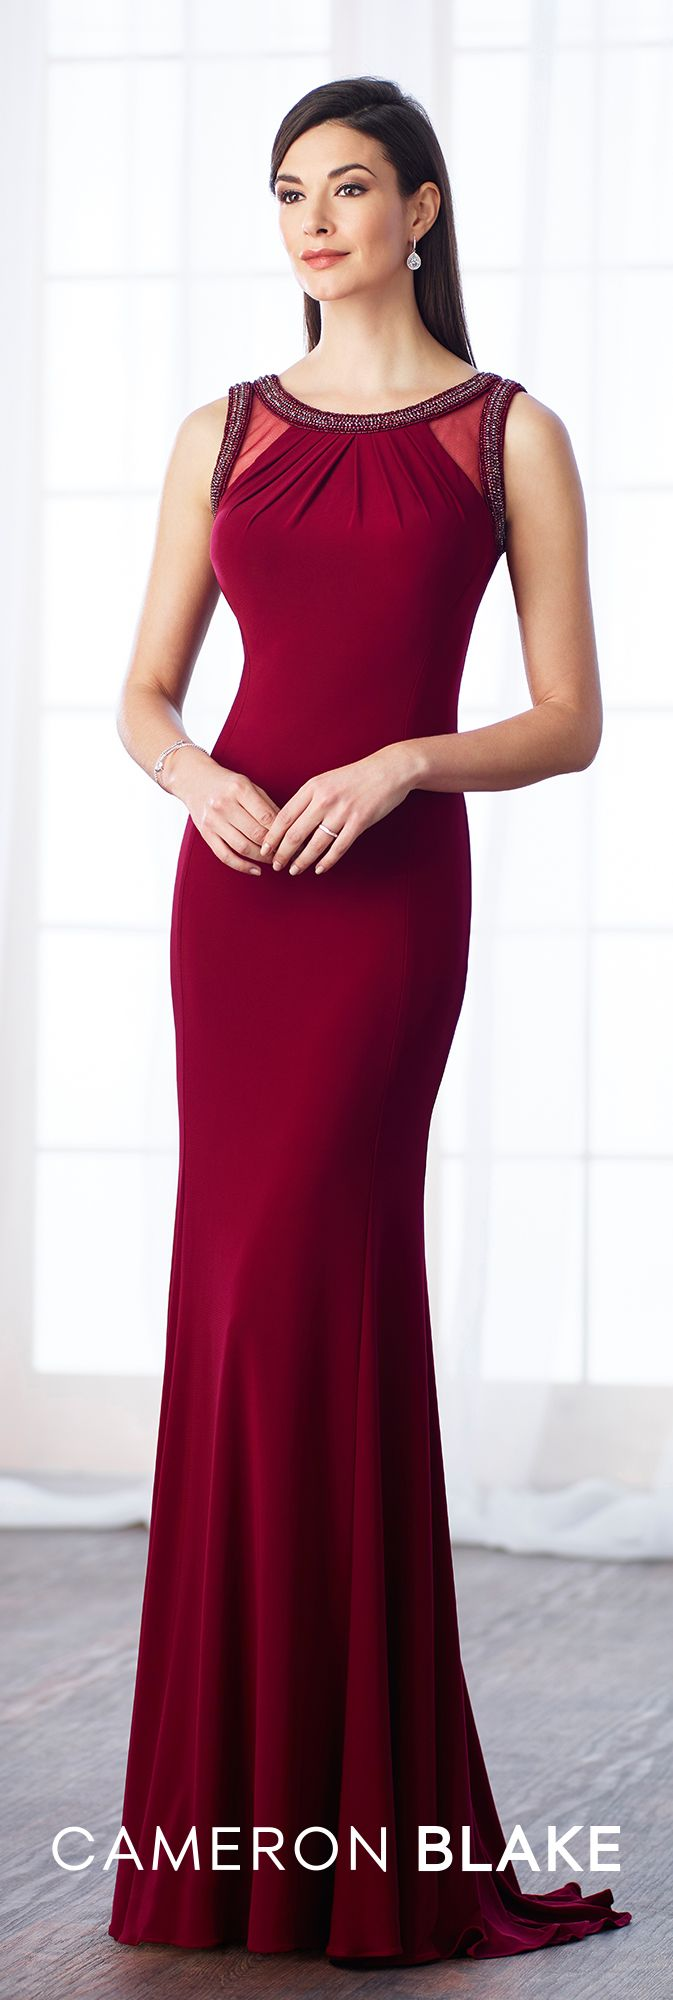 Formal Evening Gowns by Mon Cheri - Fall 2017 - Style No. 217634 - wine sleeveless matte jersey trumpet fit and flare evening dress with diamond-shaped keyhole back